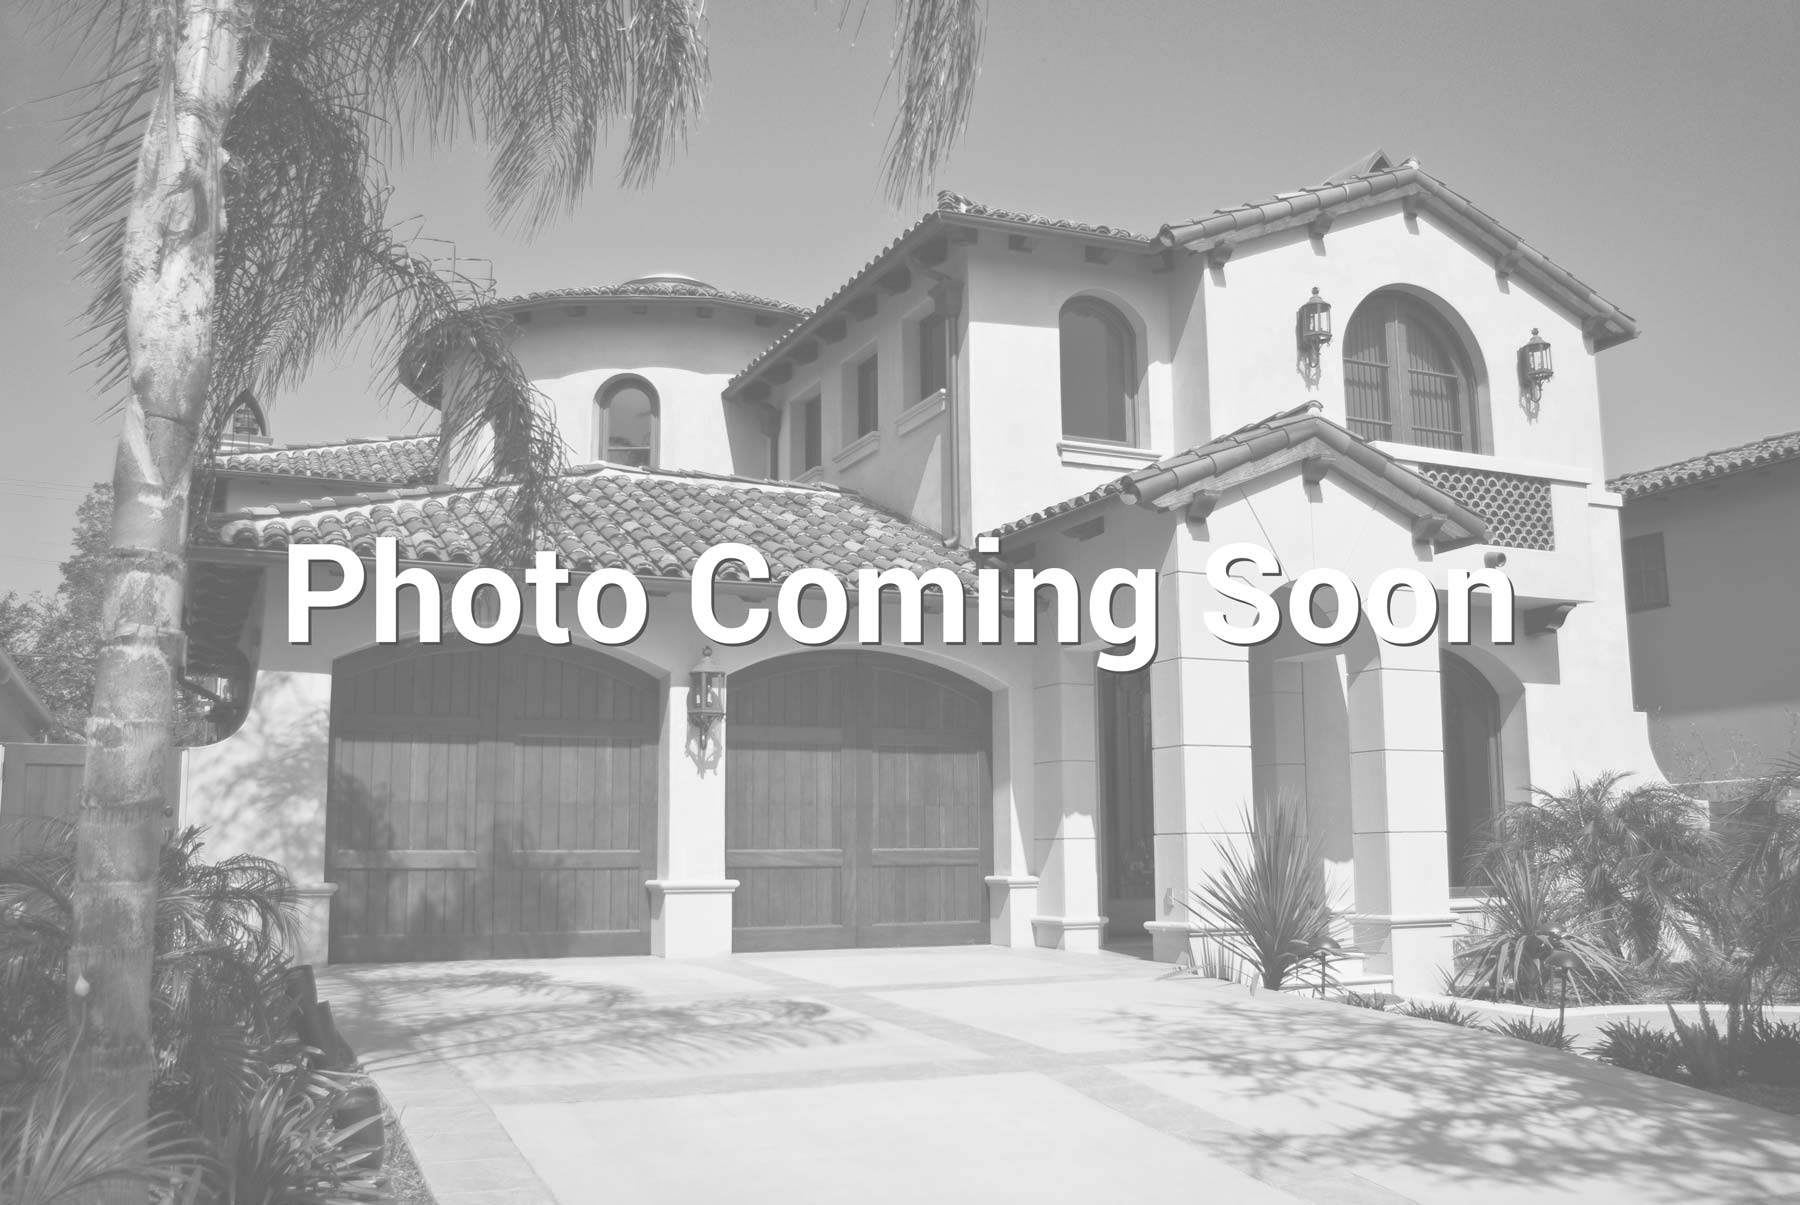 $719,000 - 3Br/3Ba -  for Sale in Firenza (firz), Anaheim Hills